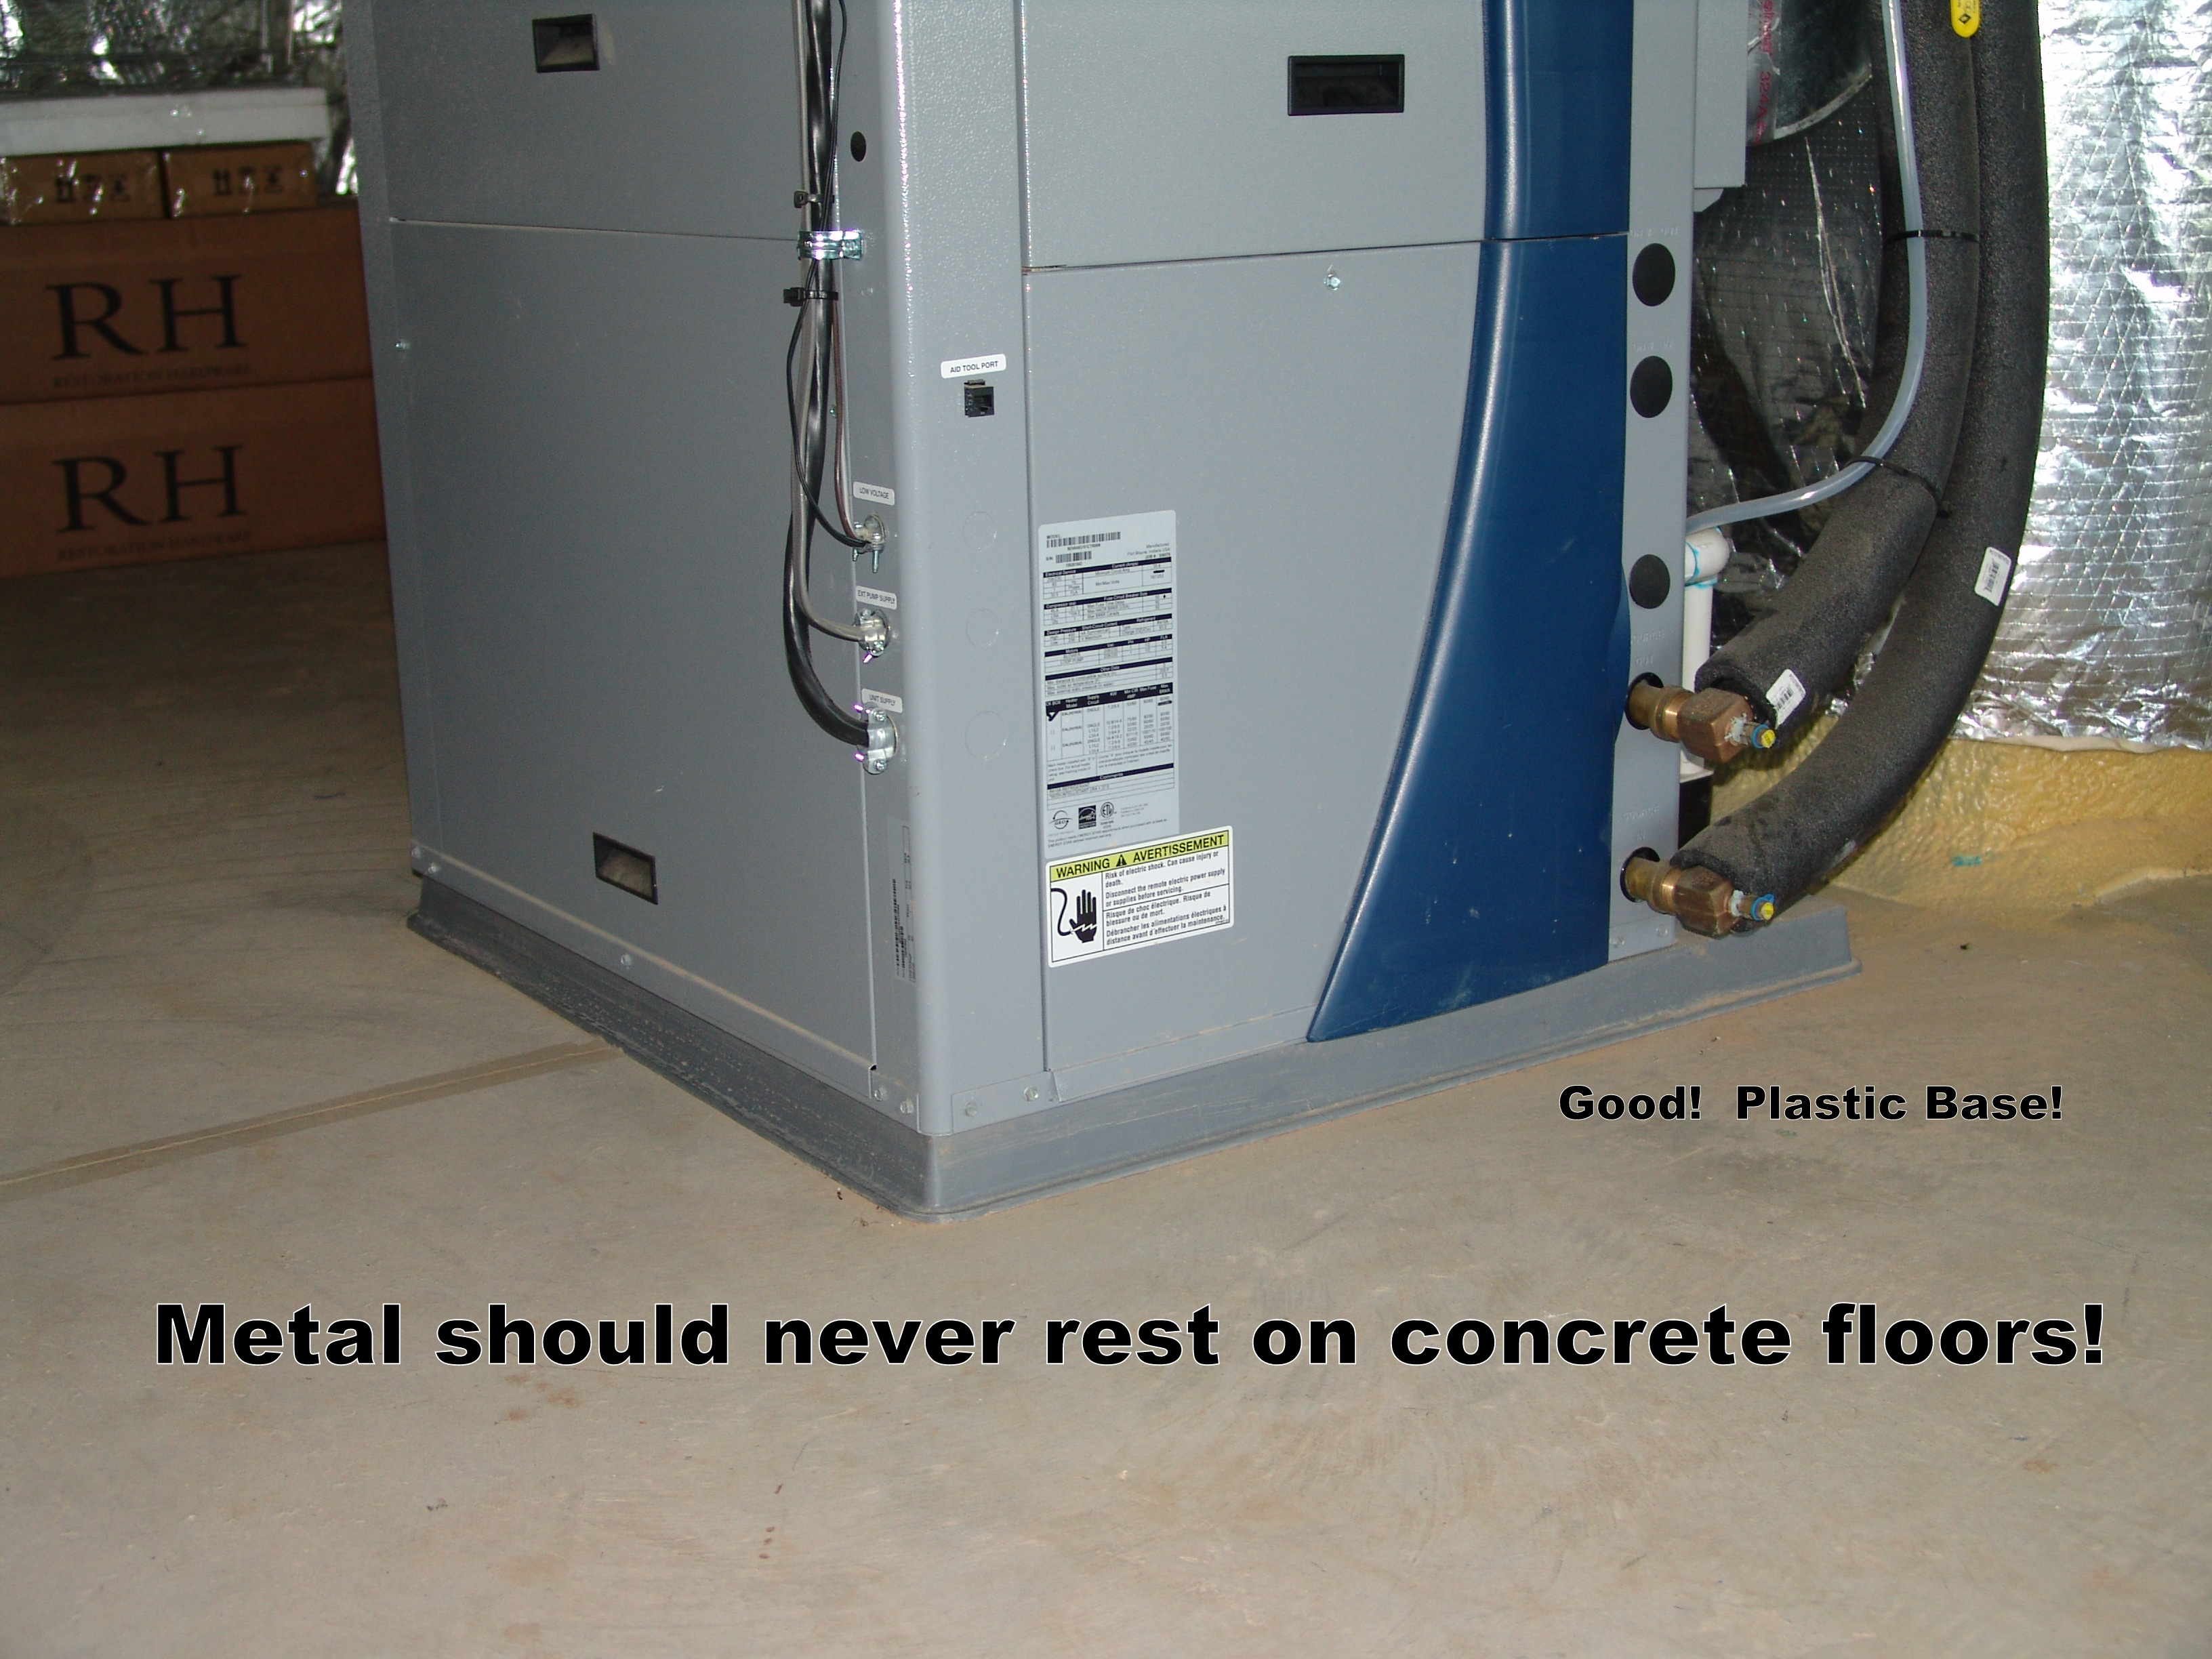 Hot Water Heater raised on a plastic base